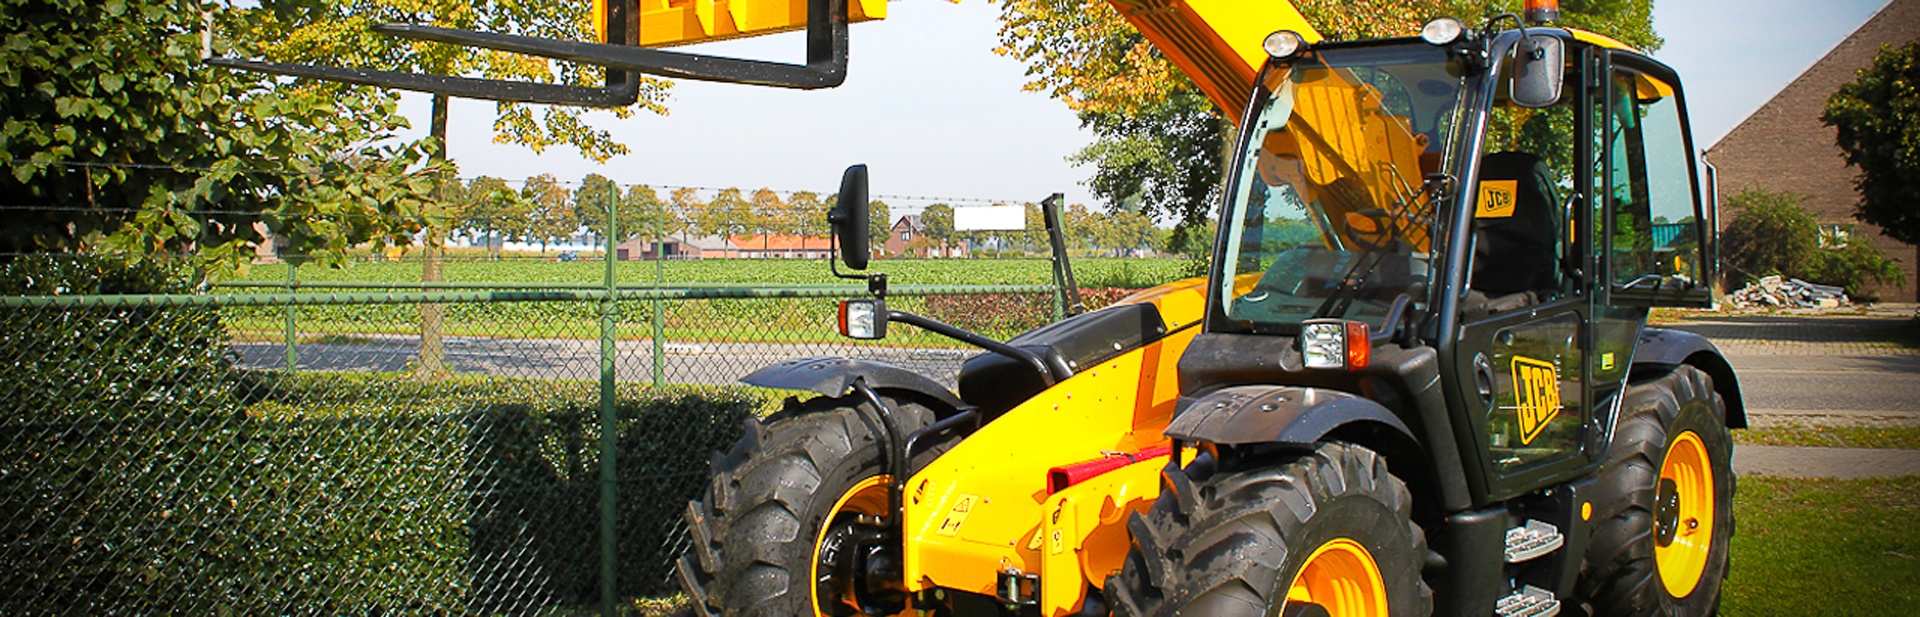 AG Machinery Worldwide sells new and used AG equipment and compact construction machines